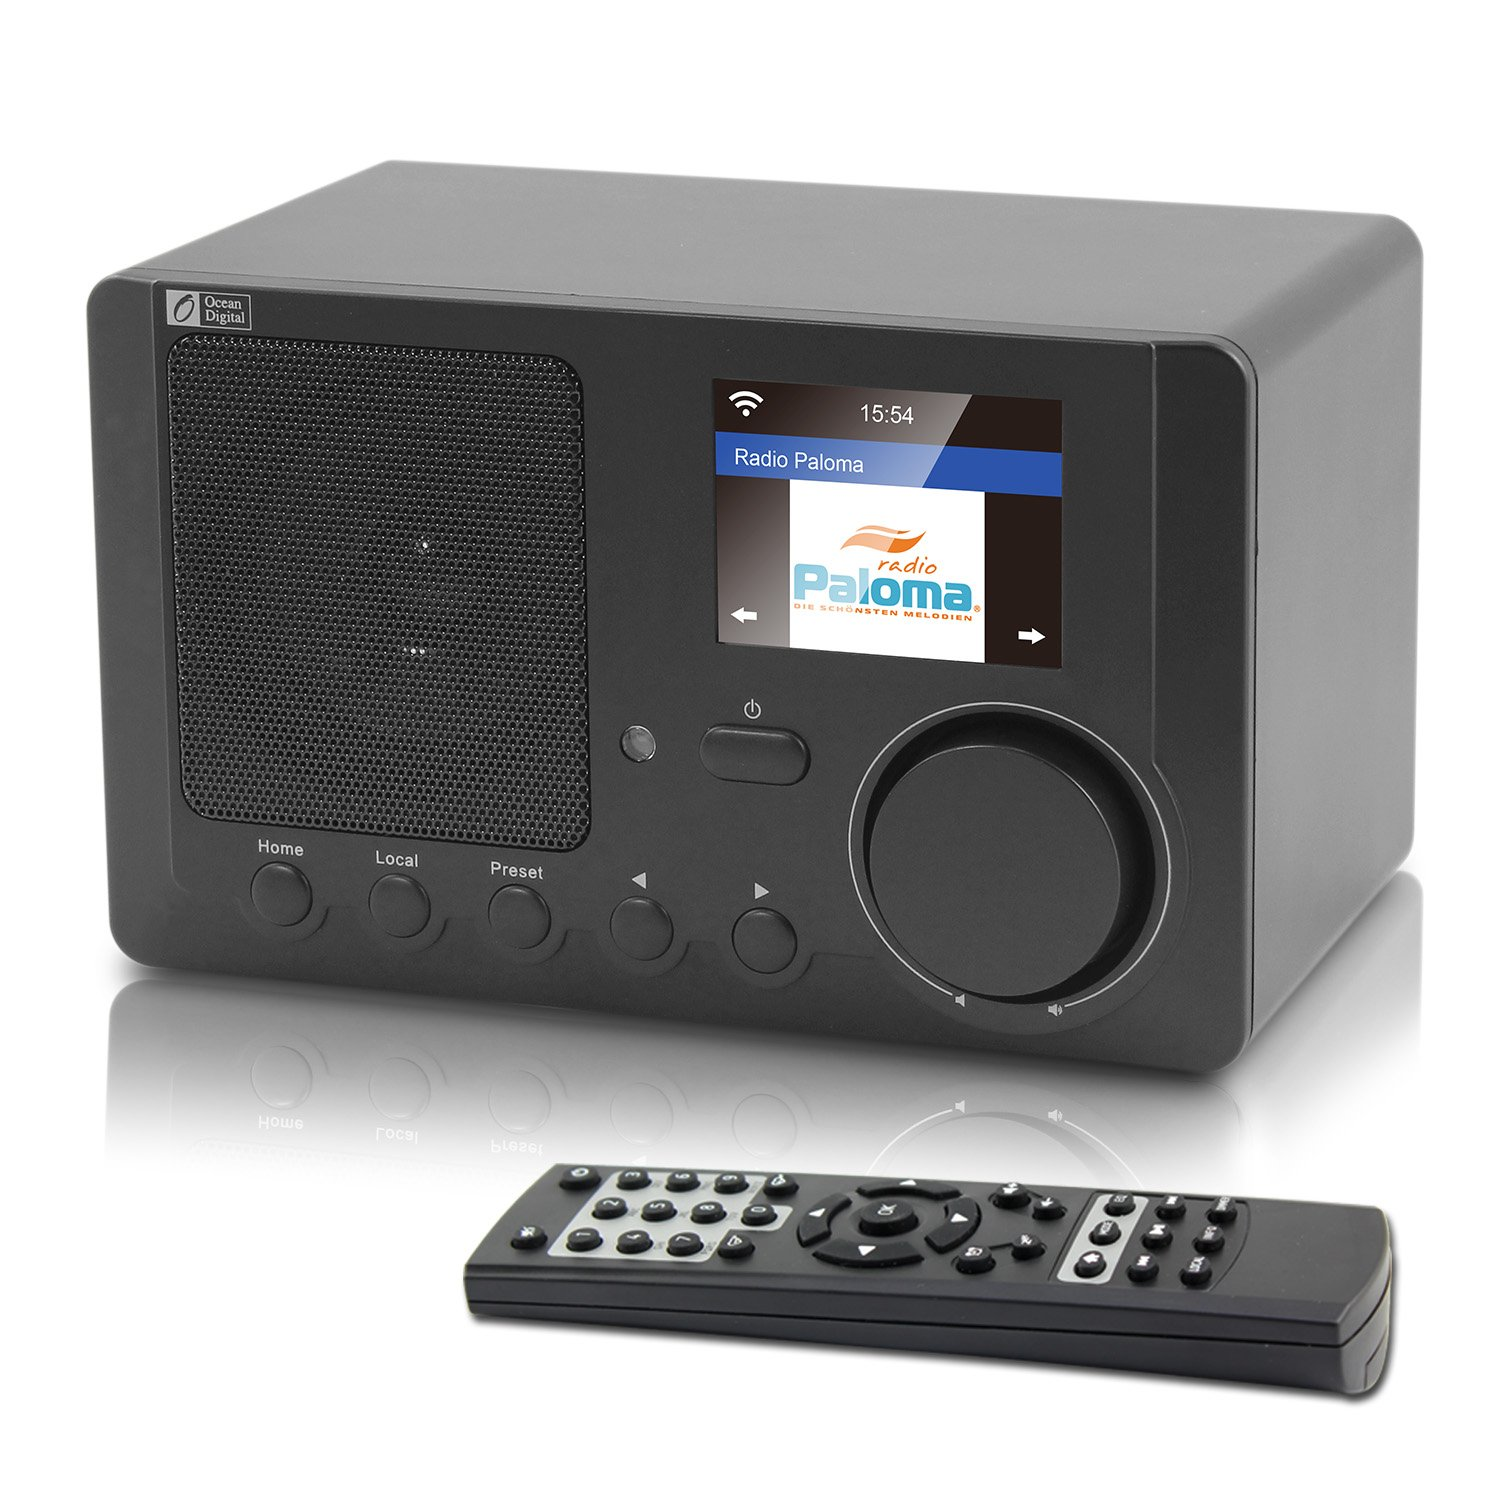 Ocean Digital Wifi internet radio WR282CD DAB DAB Amazon